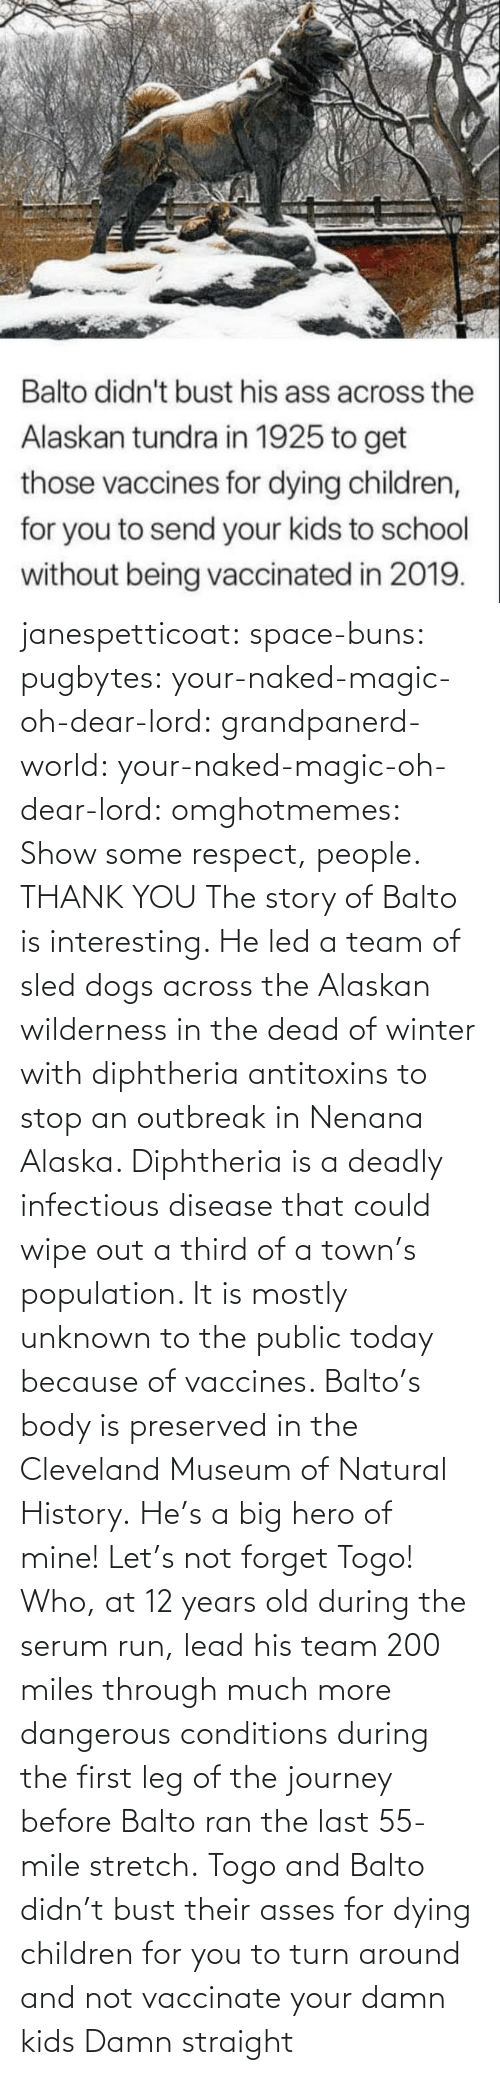 Naked: janespetticoat: space-buns:  pugbytes:   your-naked-magic-oh-dear-lord:  grandpanerd-world:   your-naked-magic-oh-dear-lord:  omghotmemes: Show some respect, people.  THANK YOU   The story of Balto is interesting. He led a team of sled dogs across the Alaskan wilderness in the dead of winter with diphtheria antitoxins to stop an outbreak in Nenana Alaska. Diphtheria is a deadly infectious disease that could wipe out a third of a town's population. It is mostly unknown to the public today because of vaccines. Balto's body is preserved in the Cleveland Museum of Natural History.   He's a big hero of mine!   Let's not forget Togo! Who, at 12 years old during the serum run, lead his team 200 miles through much more dangerous conditions during the first leg of the journey before Balto ran the last 55-mile stretch.   Togo and Balto didn't bust their asses for dying children for you to turn around and not vaccinate your damn kids    Damn straight